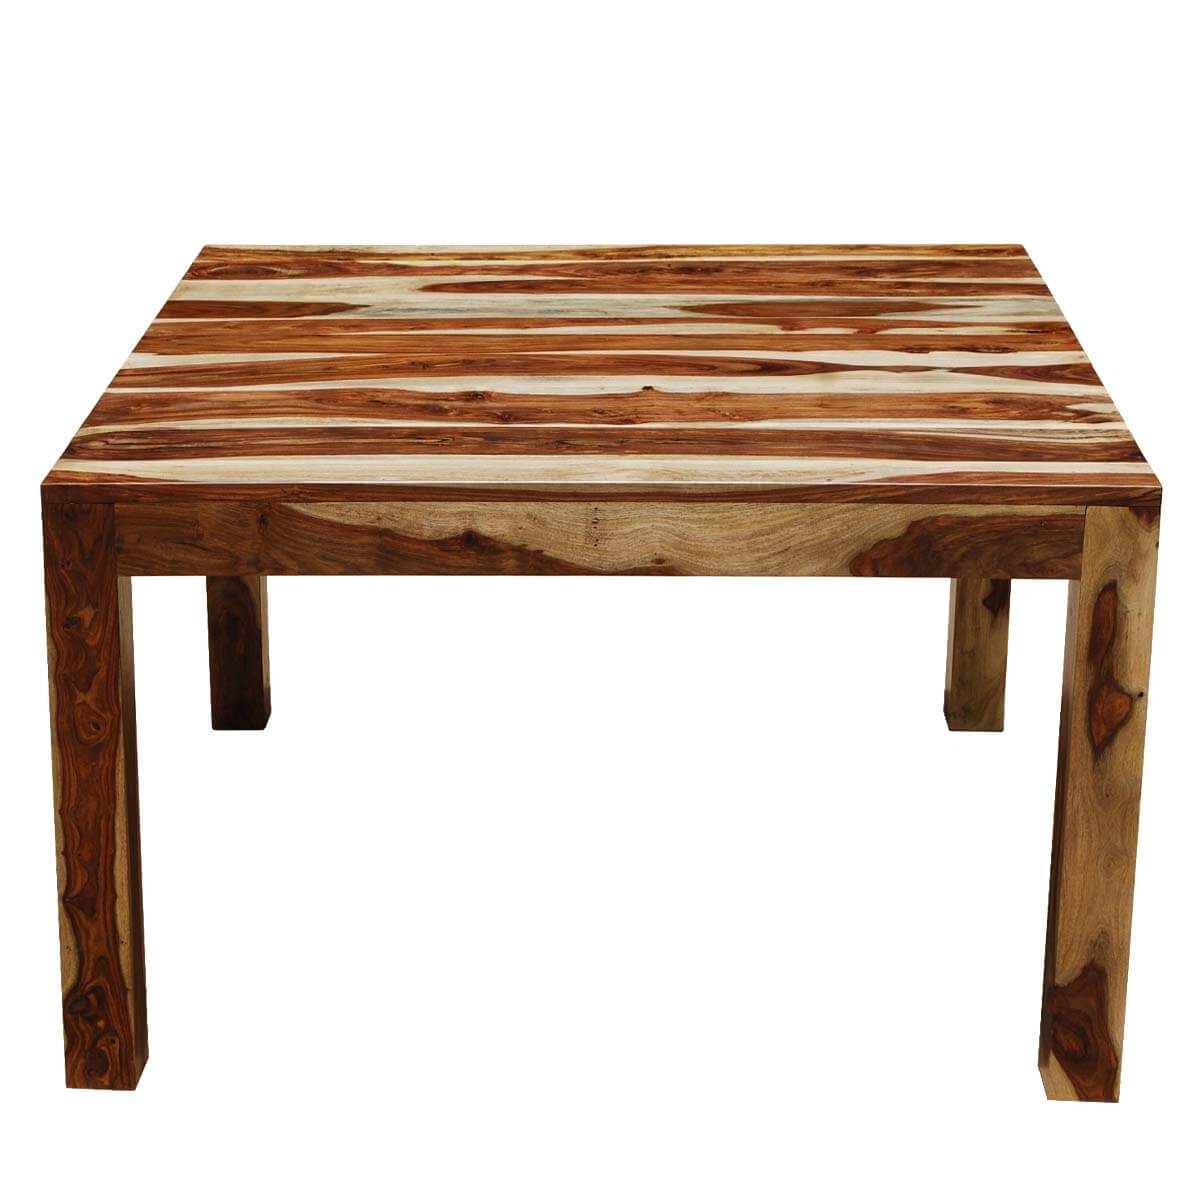 Fe Collection Kluane 60 Solid Wood Counter Height Square Dining Table